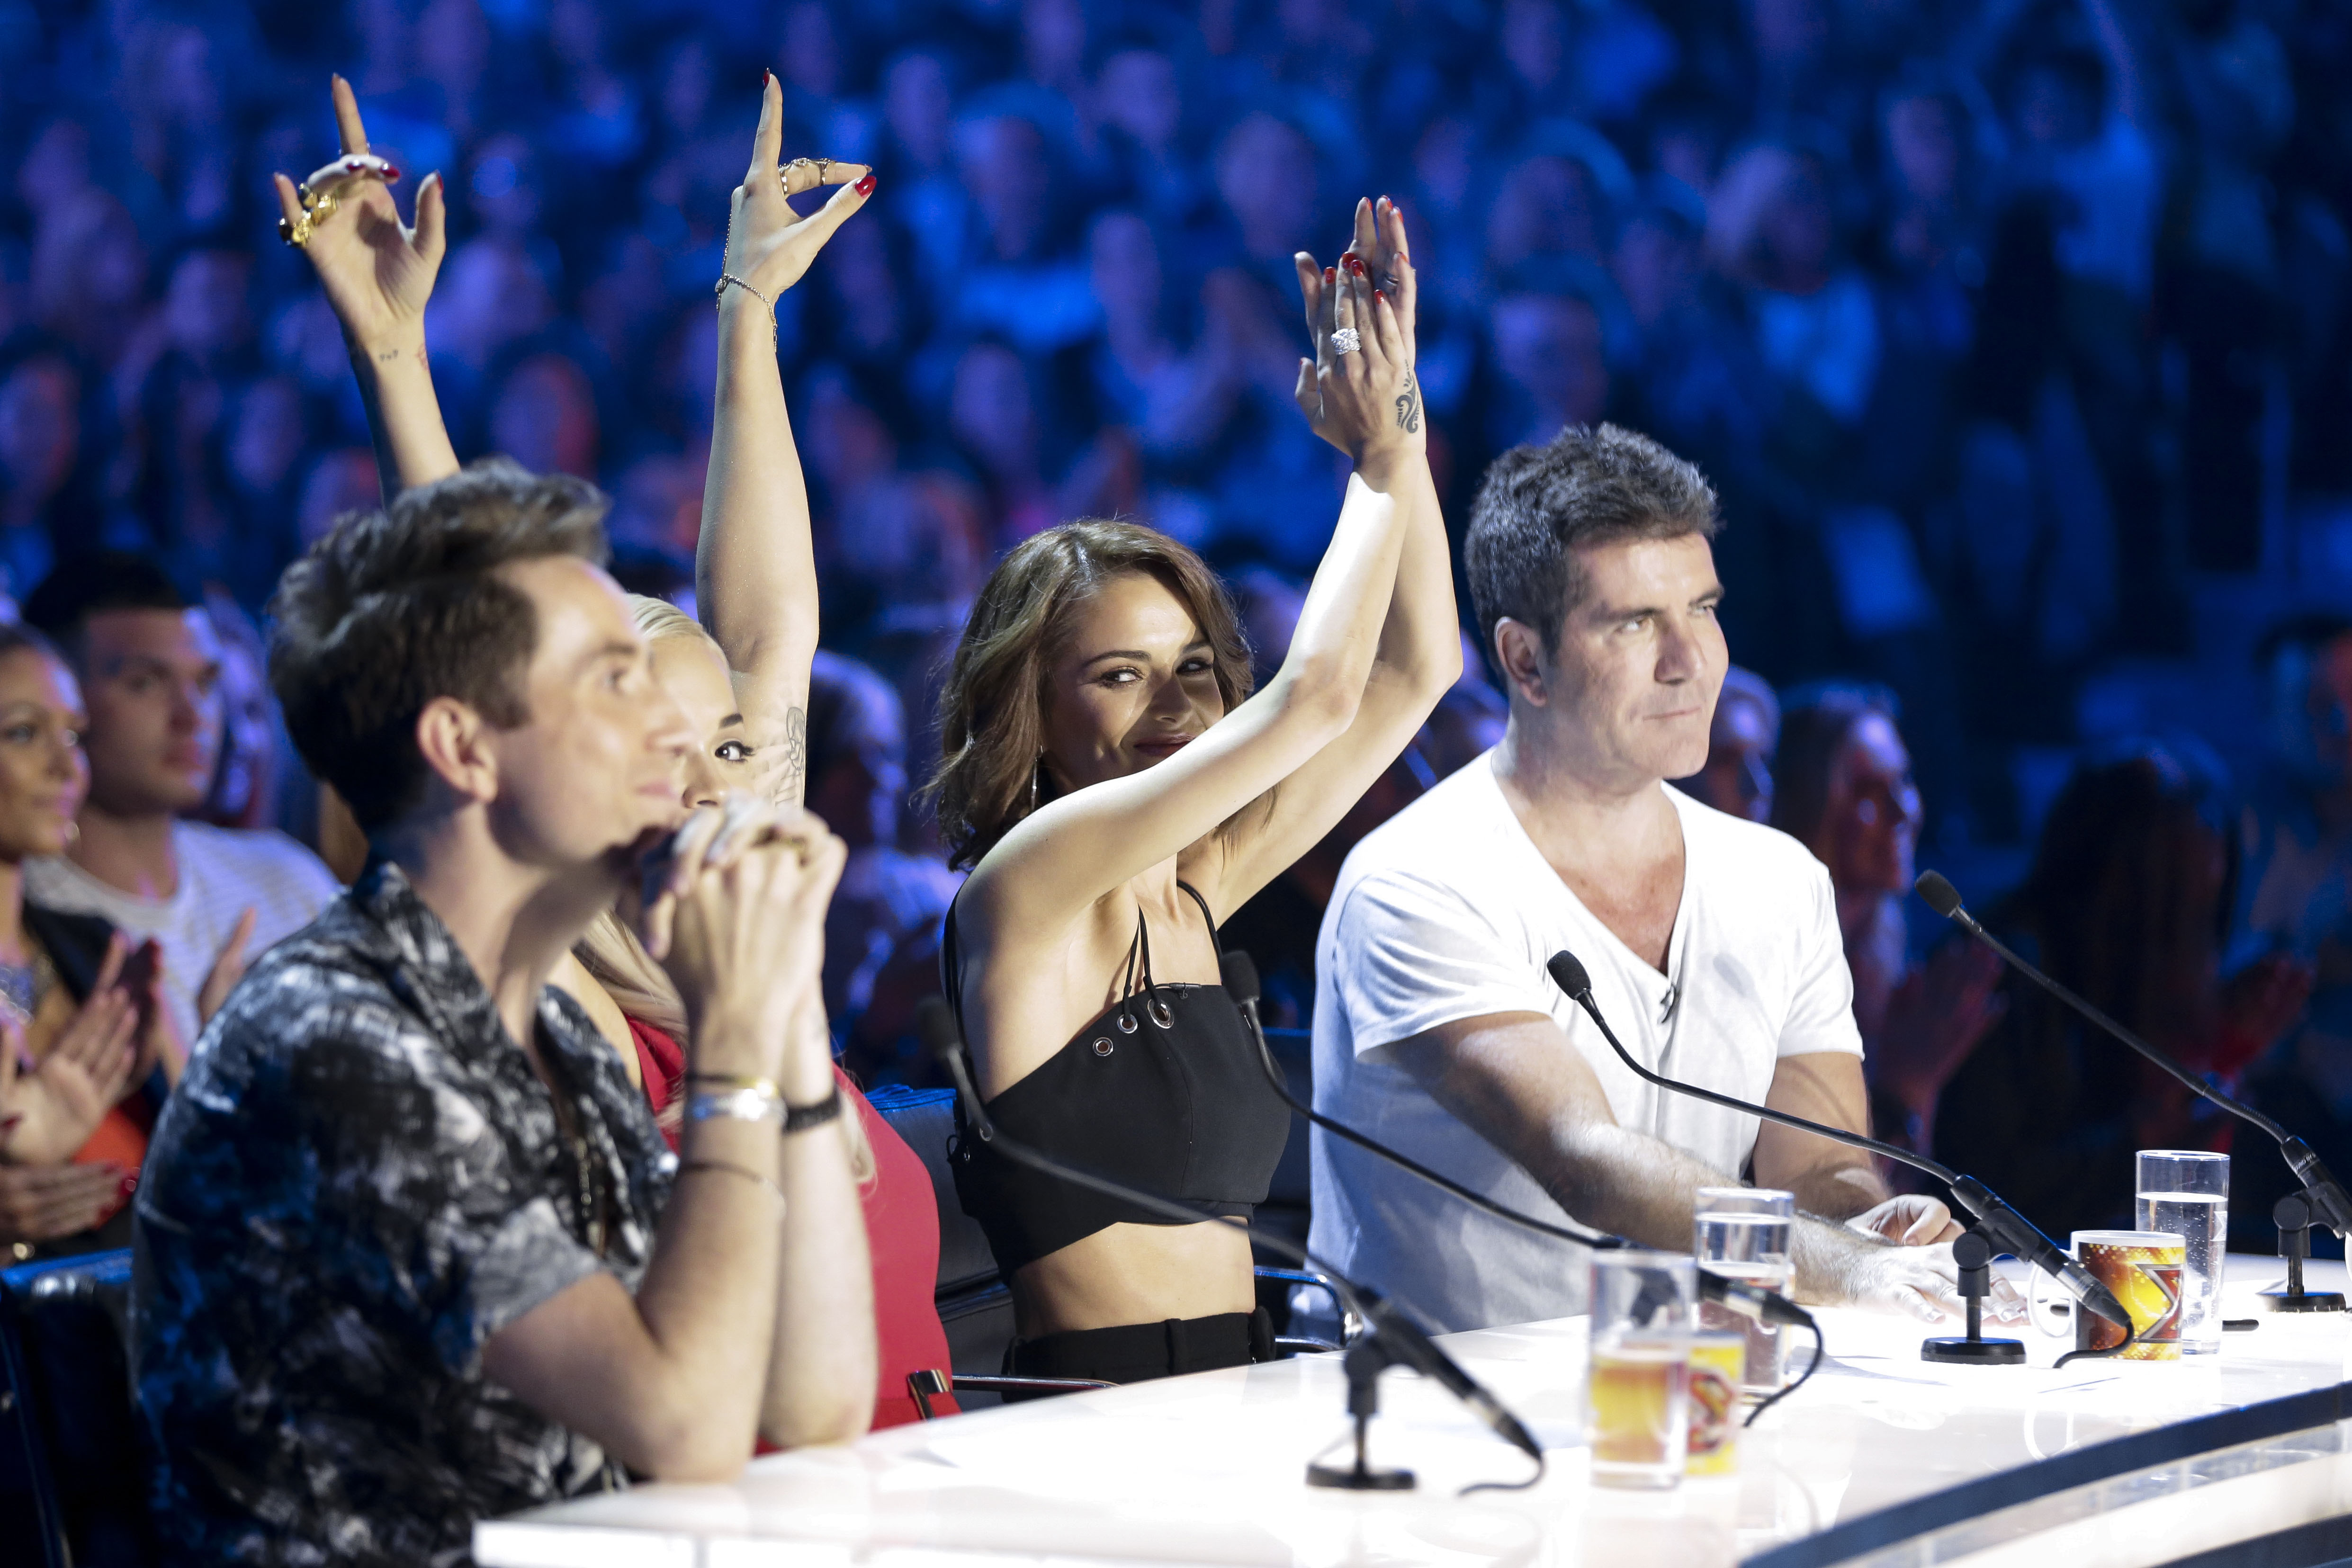 The X Factor 2015 auditions episode 6 recap: Time for the girls to shine